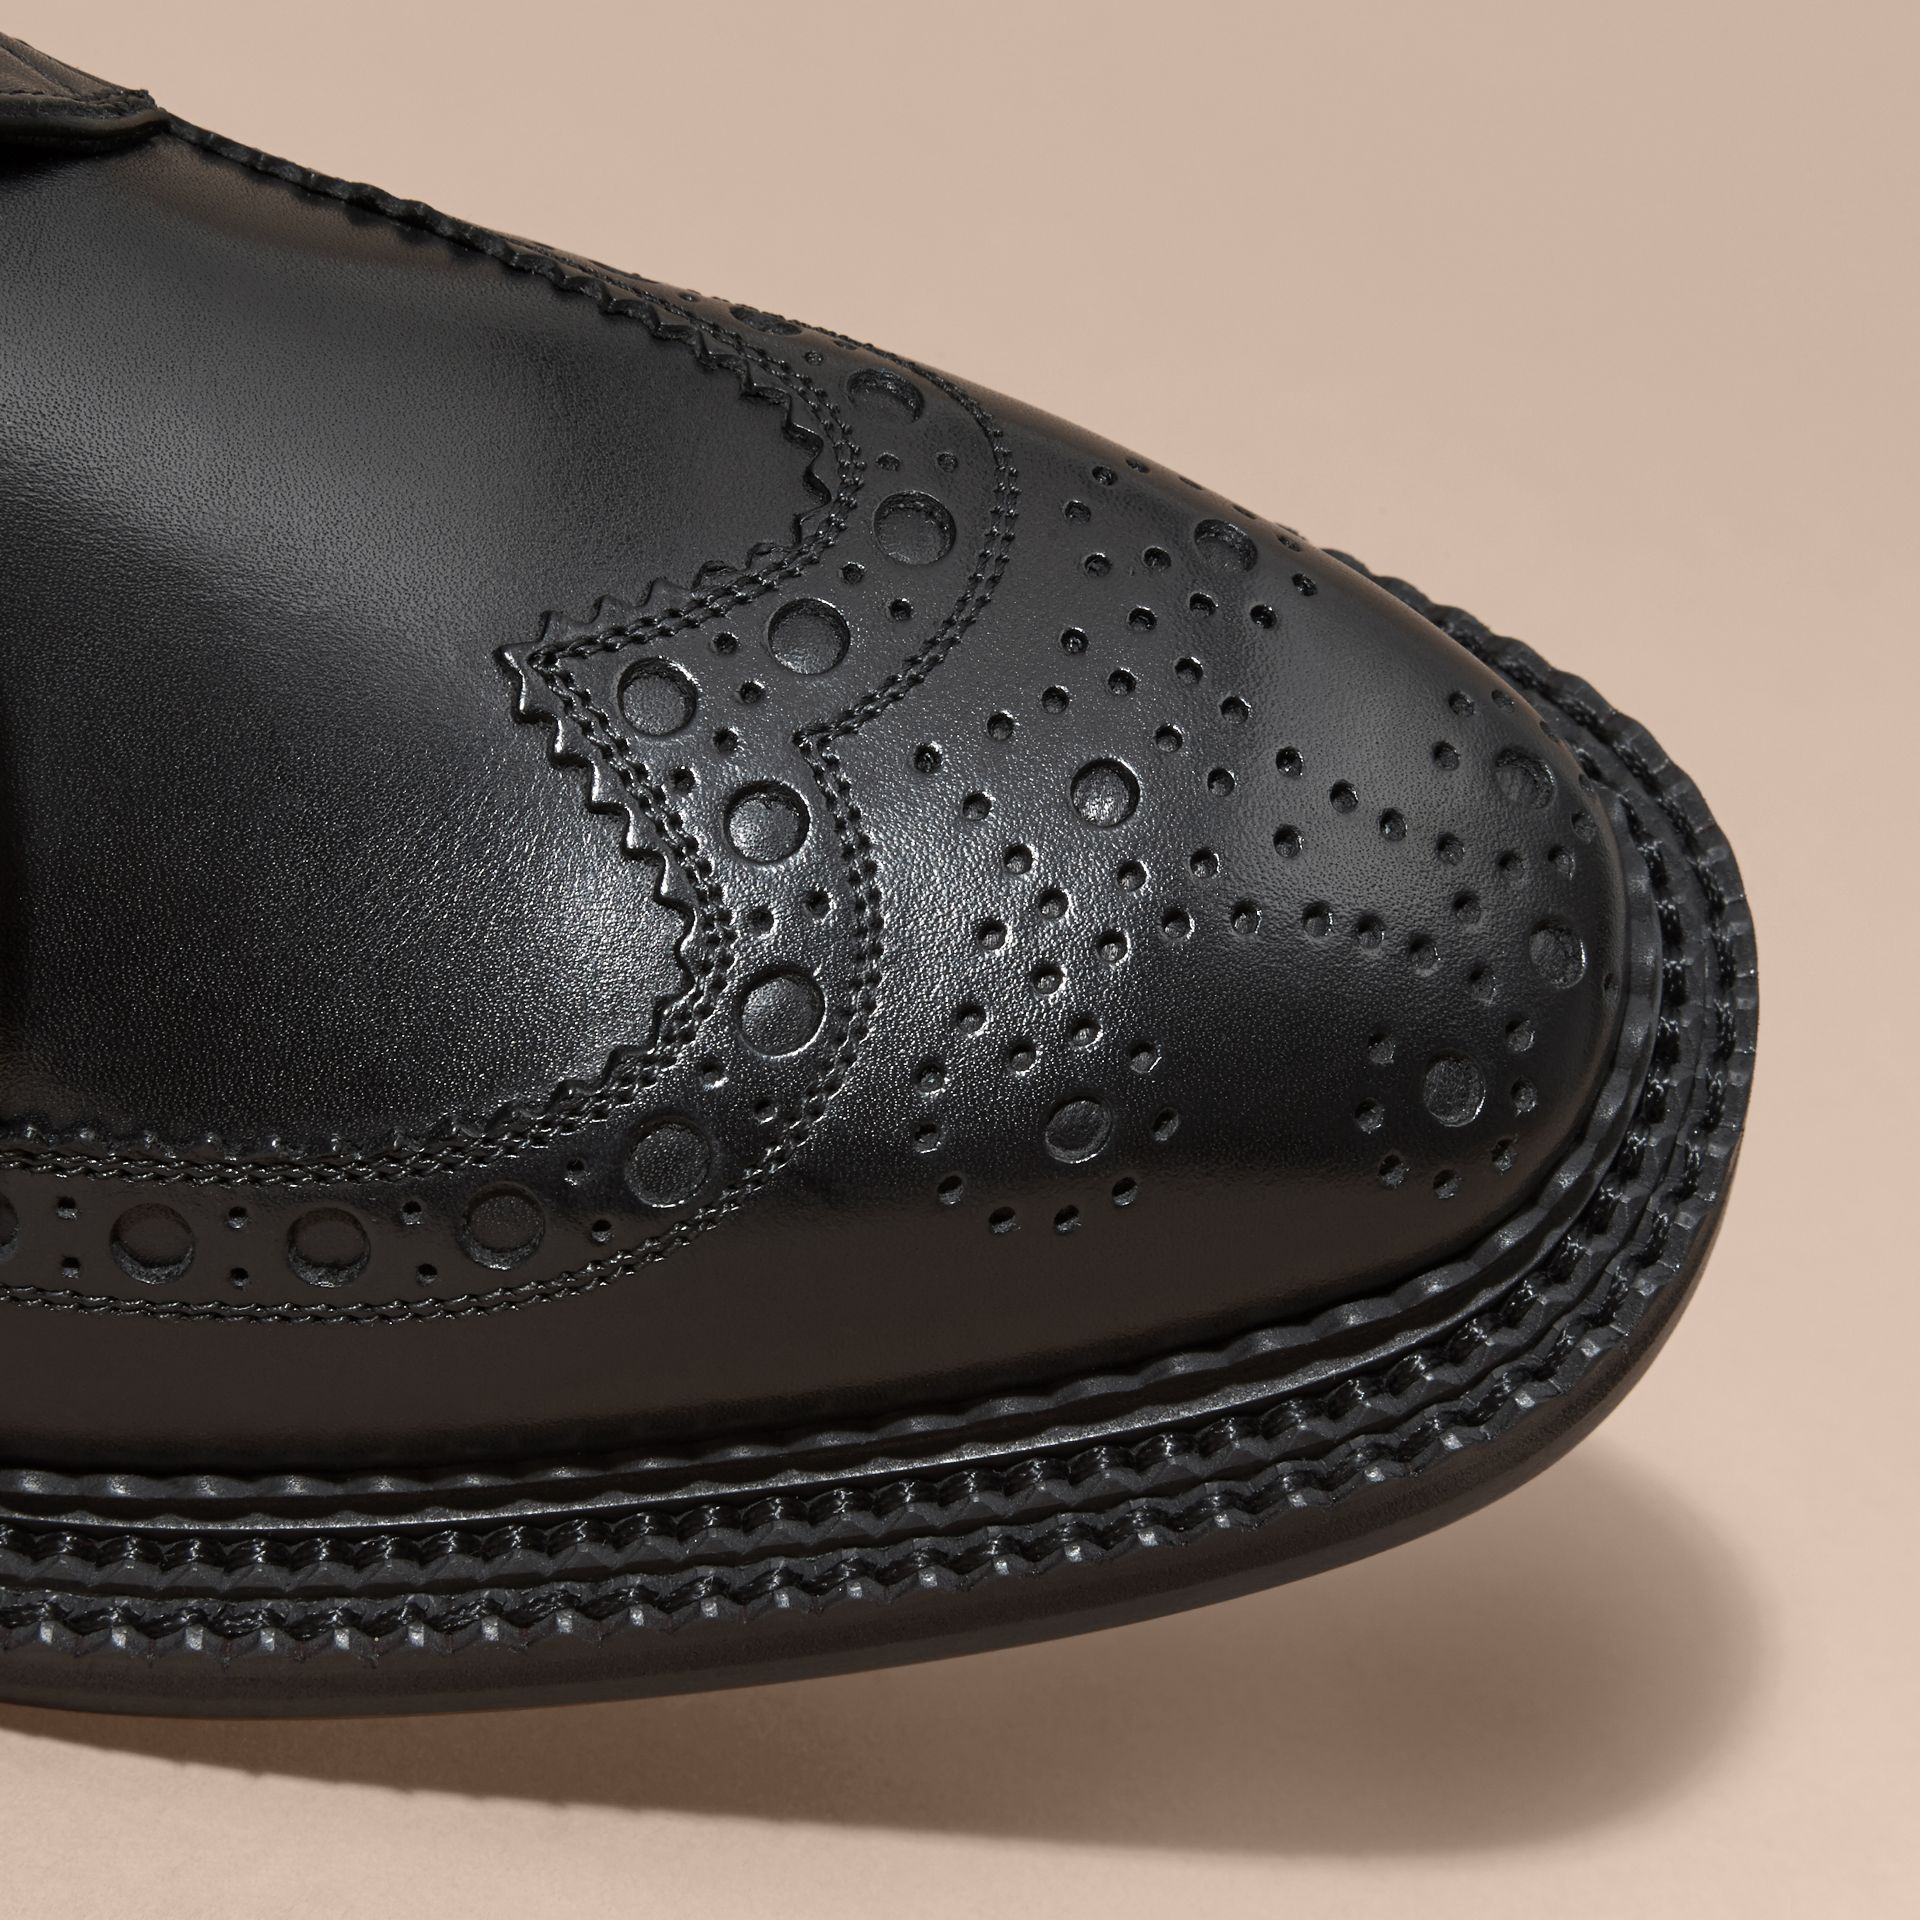 Leather Brogue Boots in Black - Men | Burberry - gallery image 2